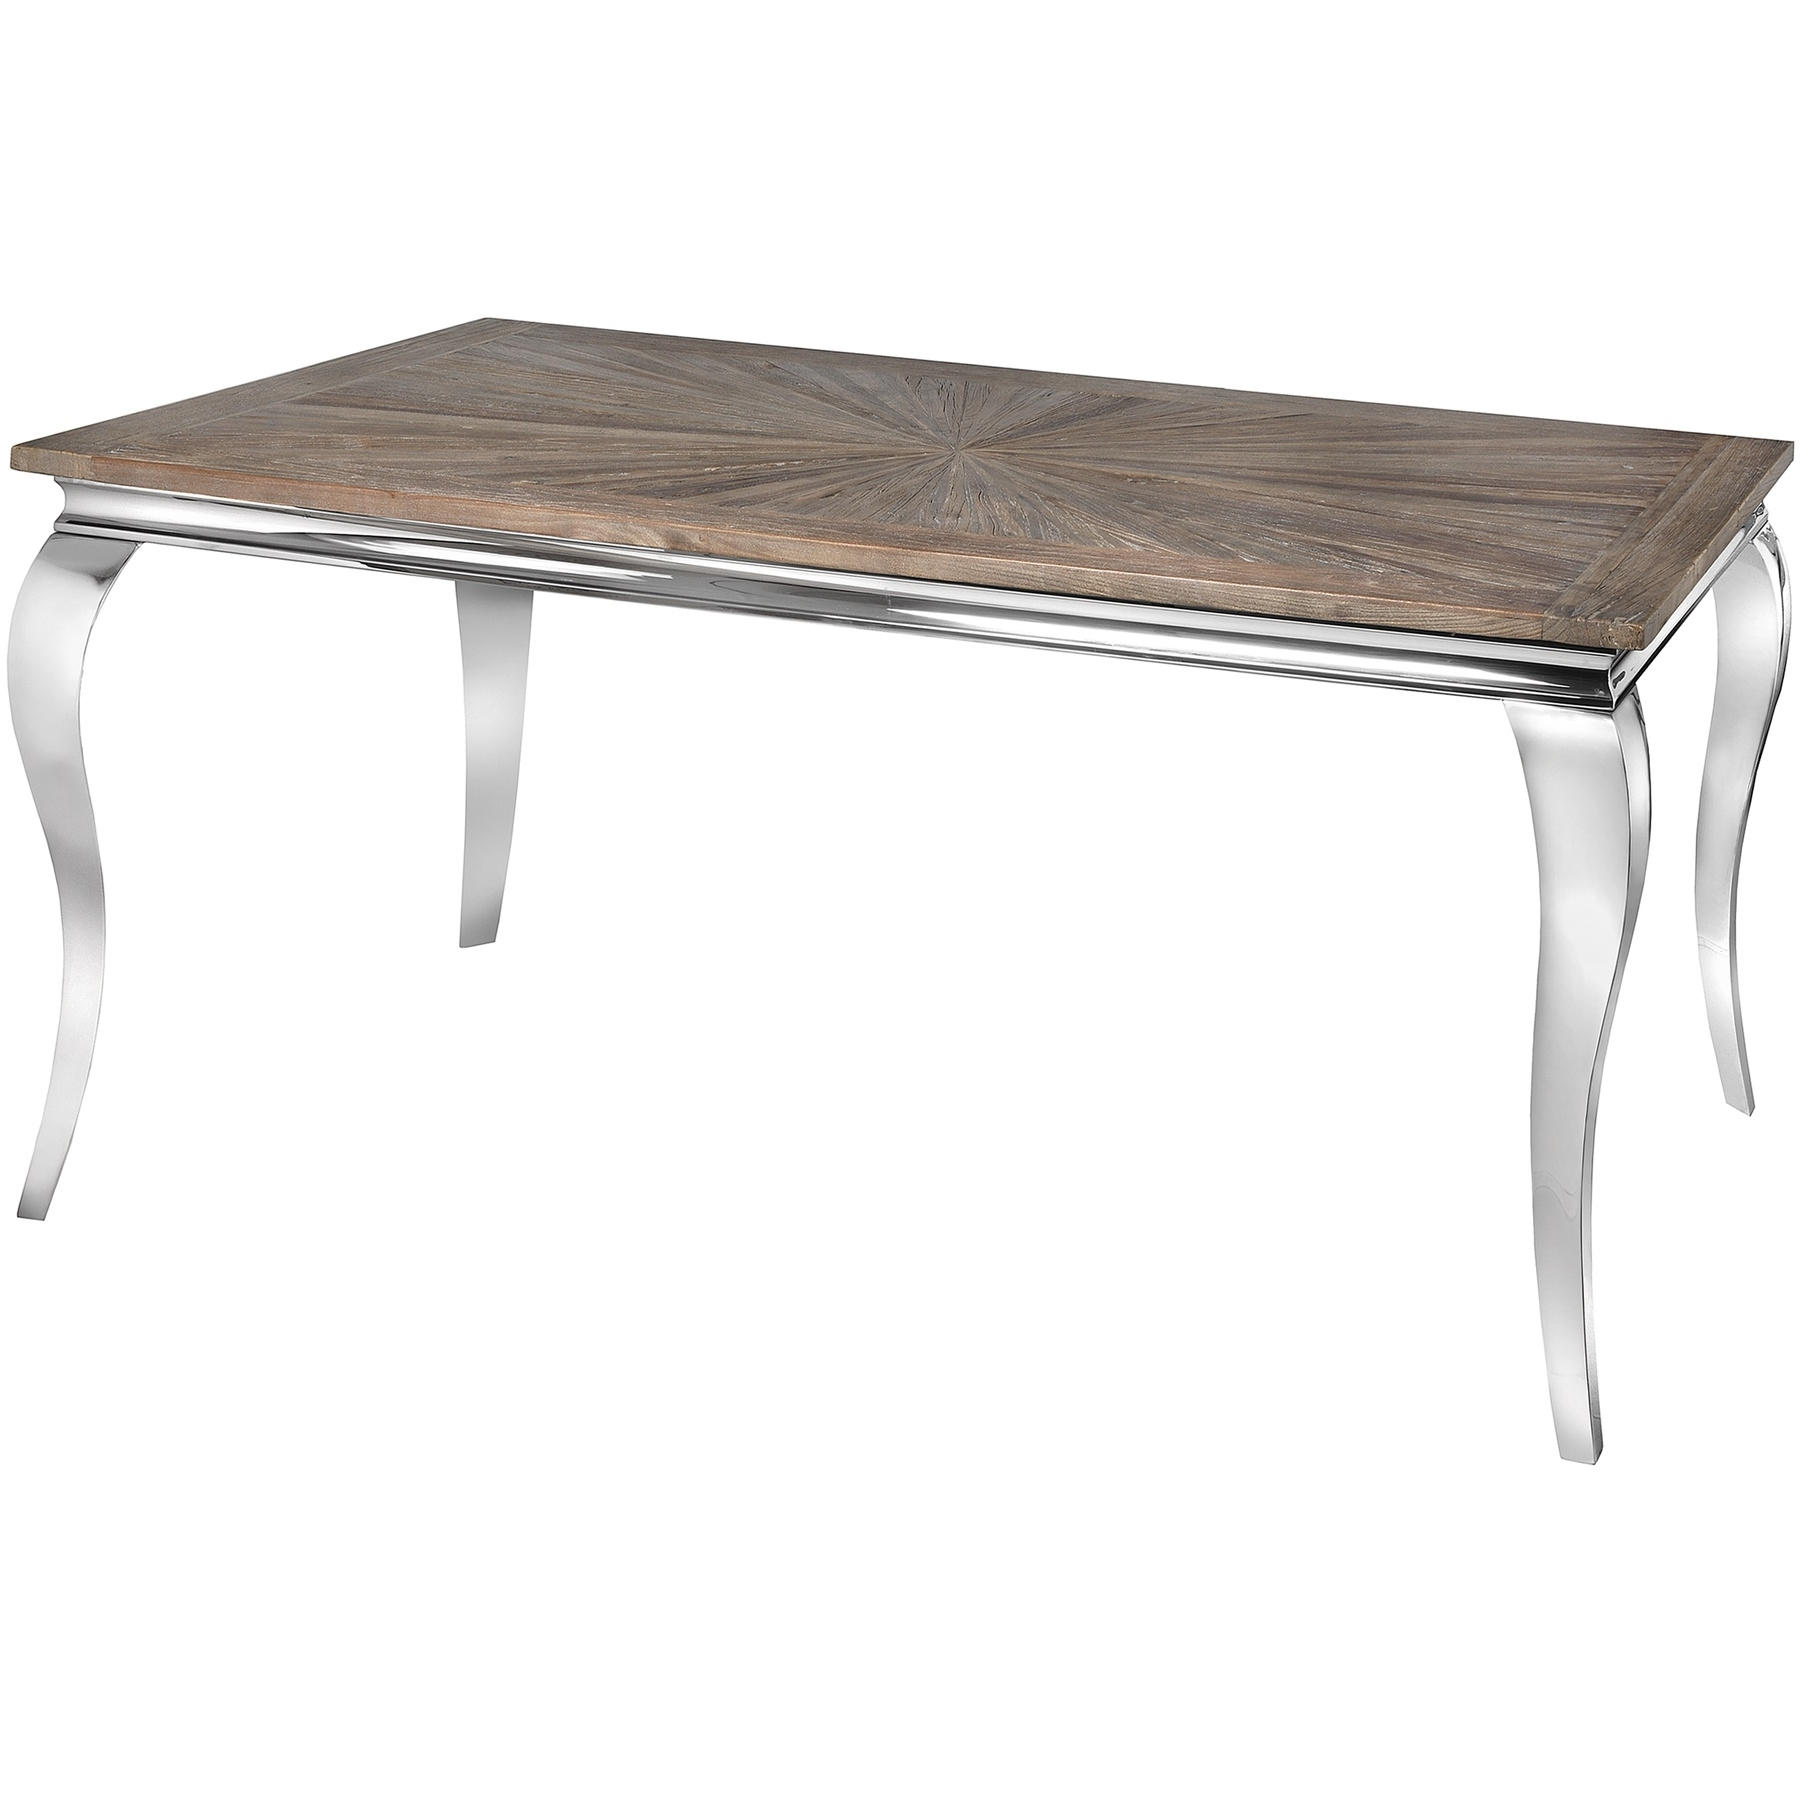 Mayfair Dining Tables In Favorite Mayfair Collection Reclaimed Elm Dining Table From Hill Interiors (View 8 of 25)